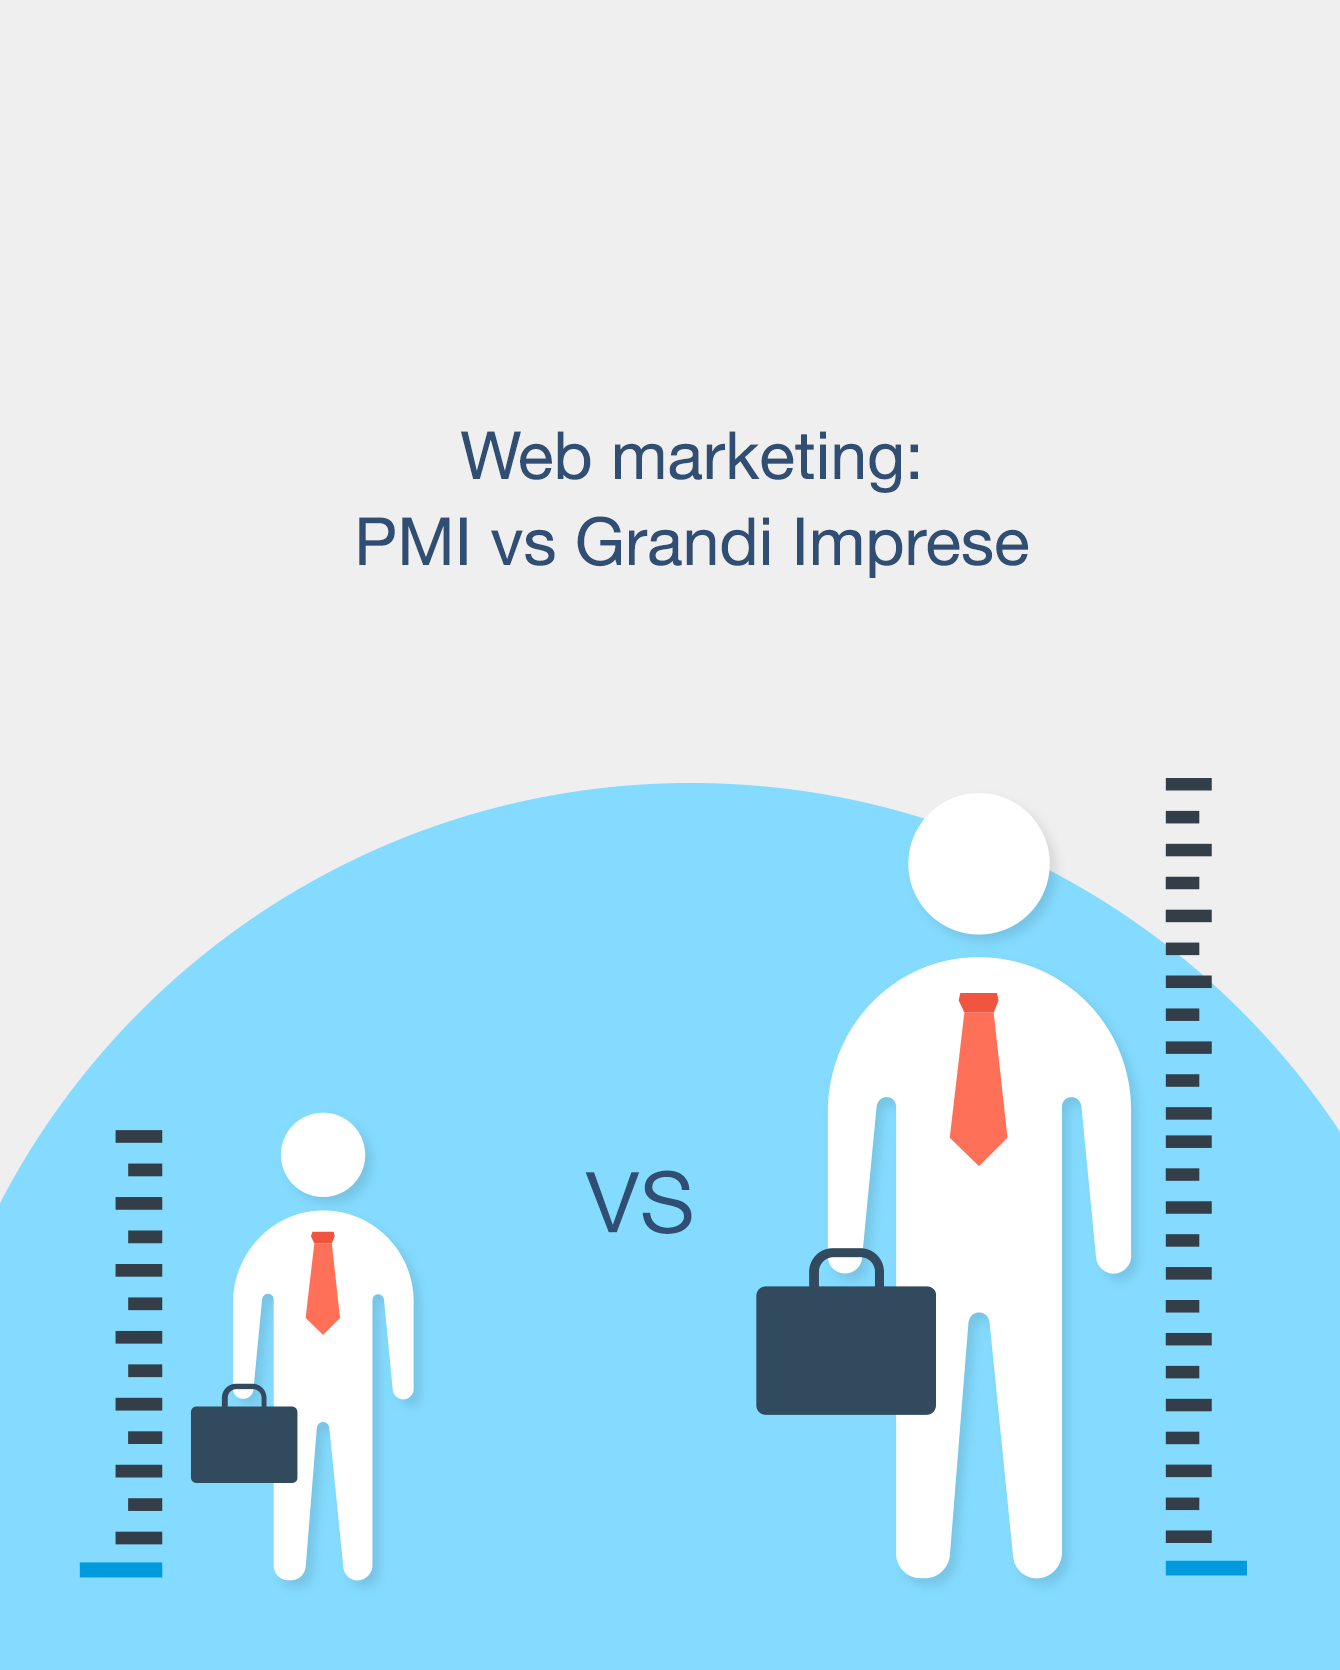 Web marketing: PMI vs Grandi Imprese